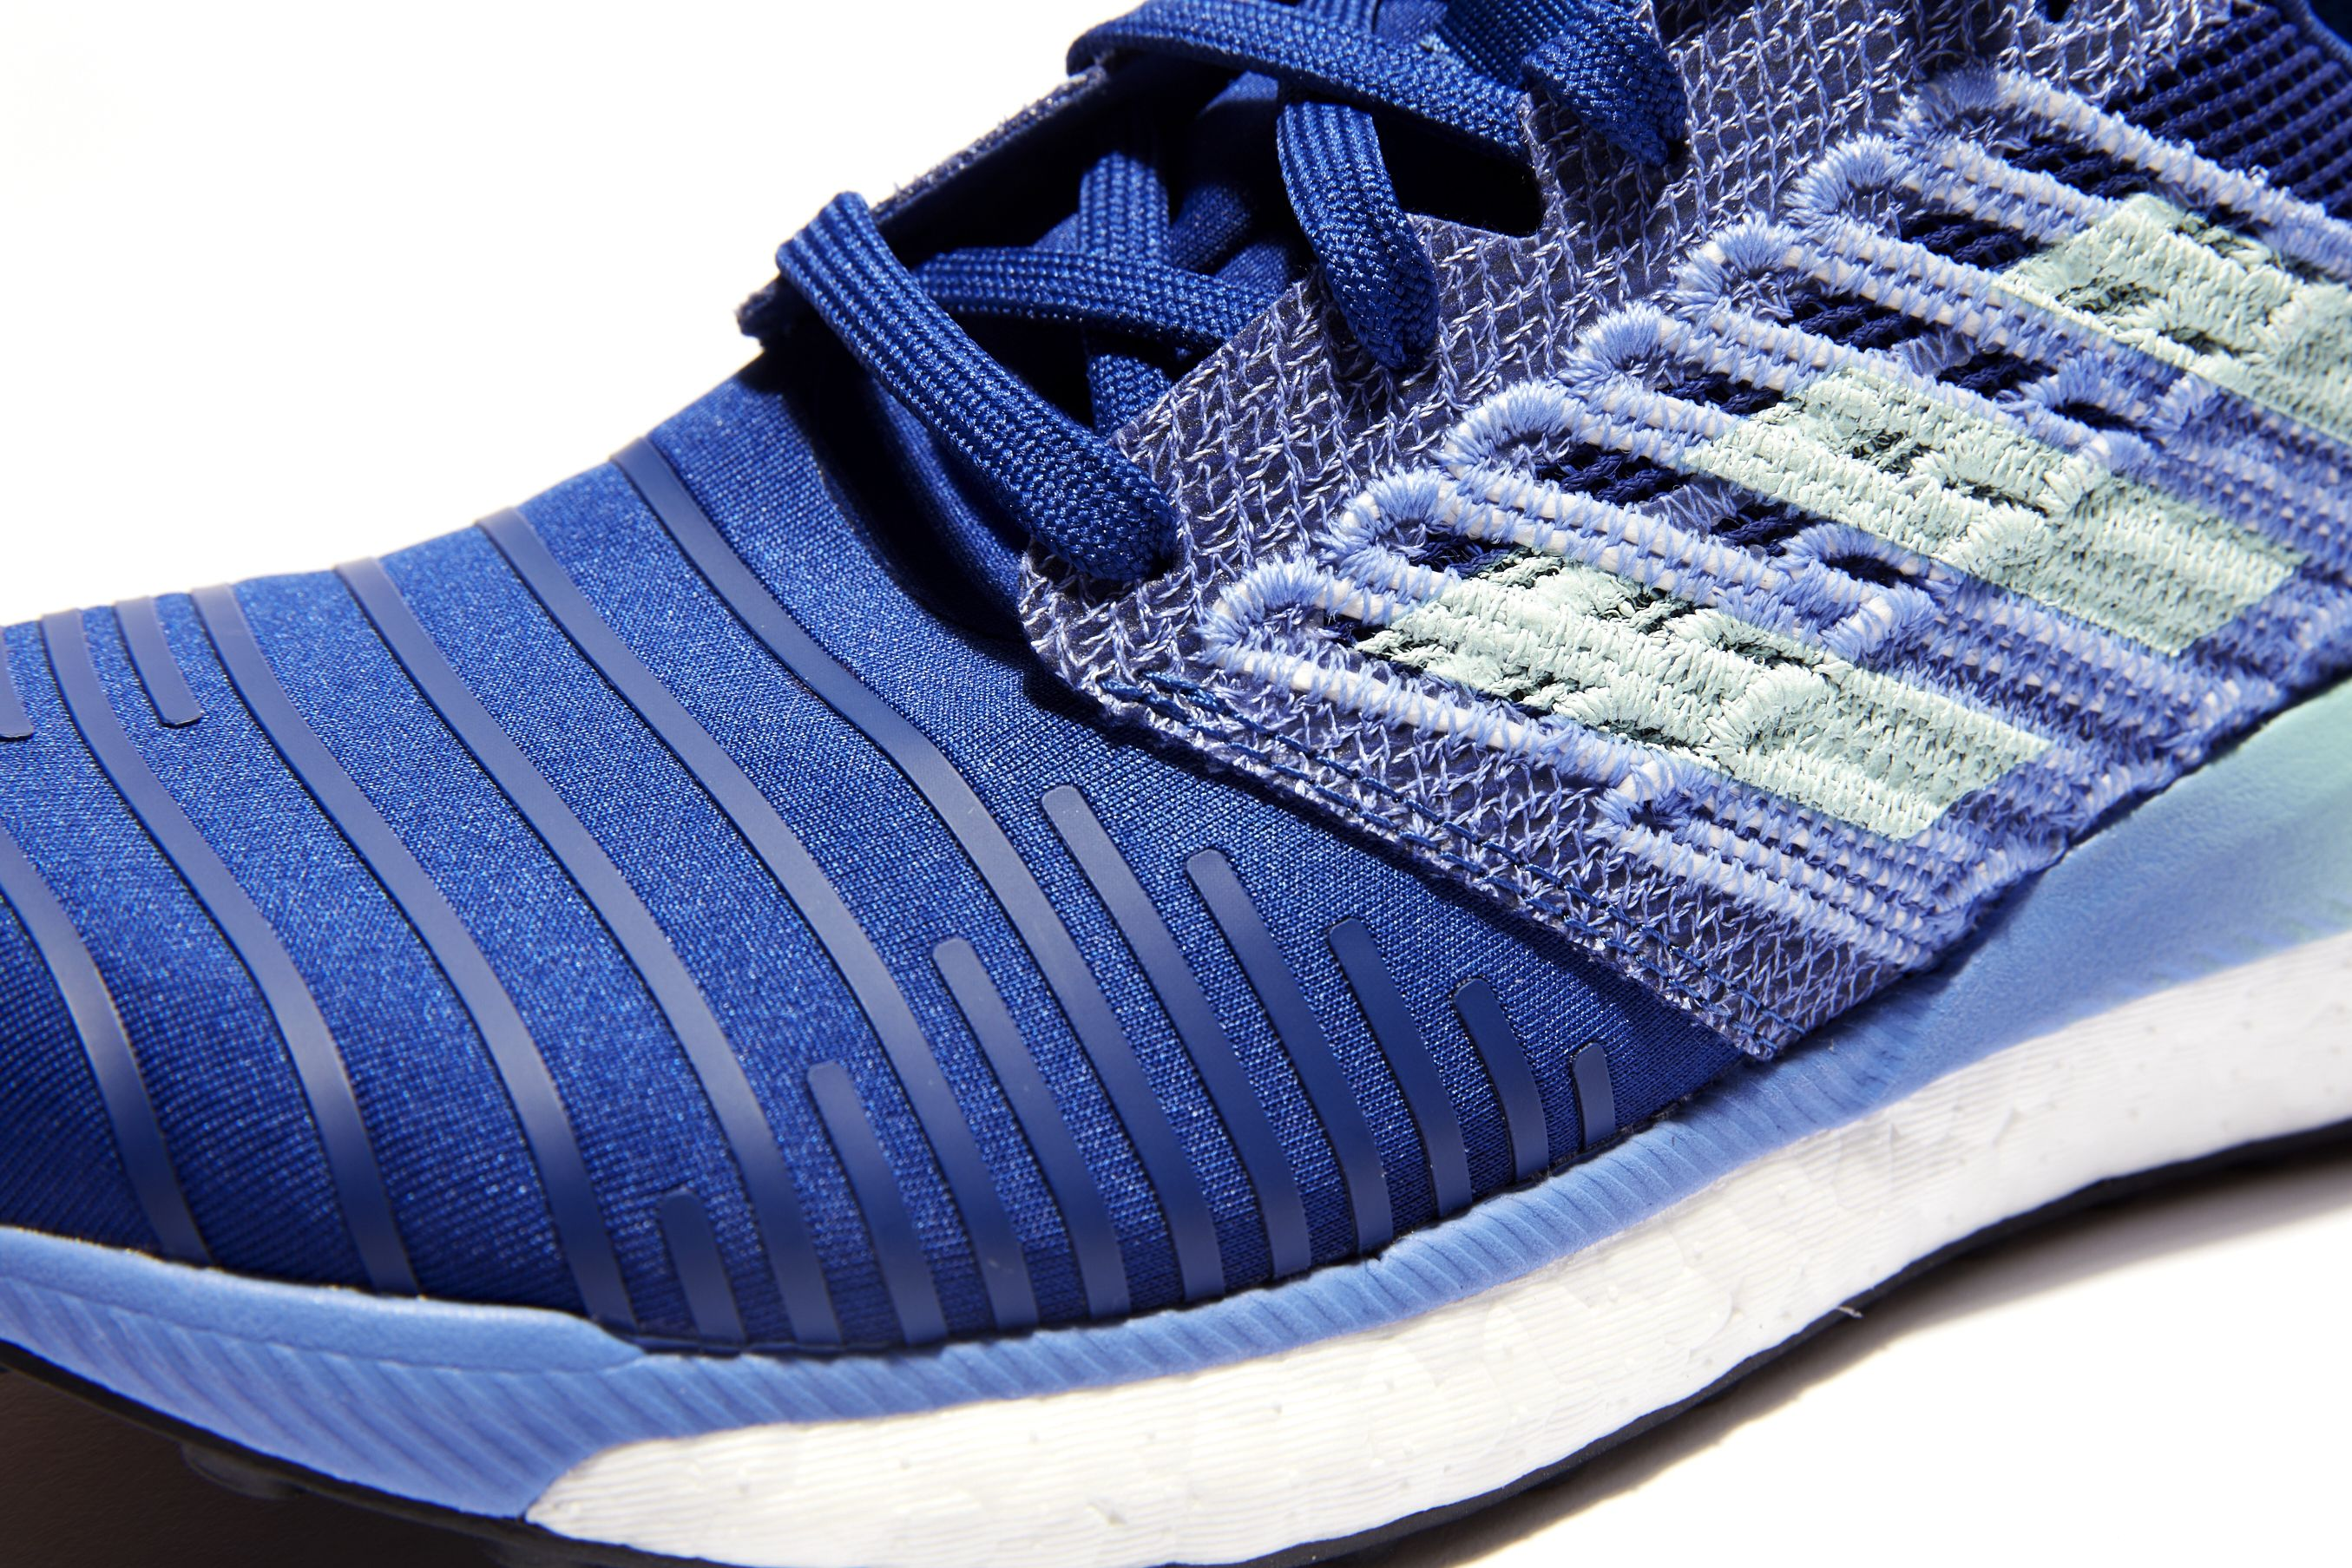 7b99ad8899453 The Adidas Solar Boost Is a Springy and Supportive Dream Shoe